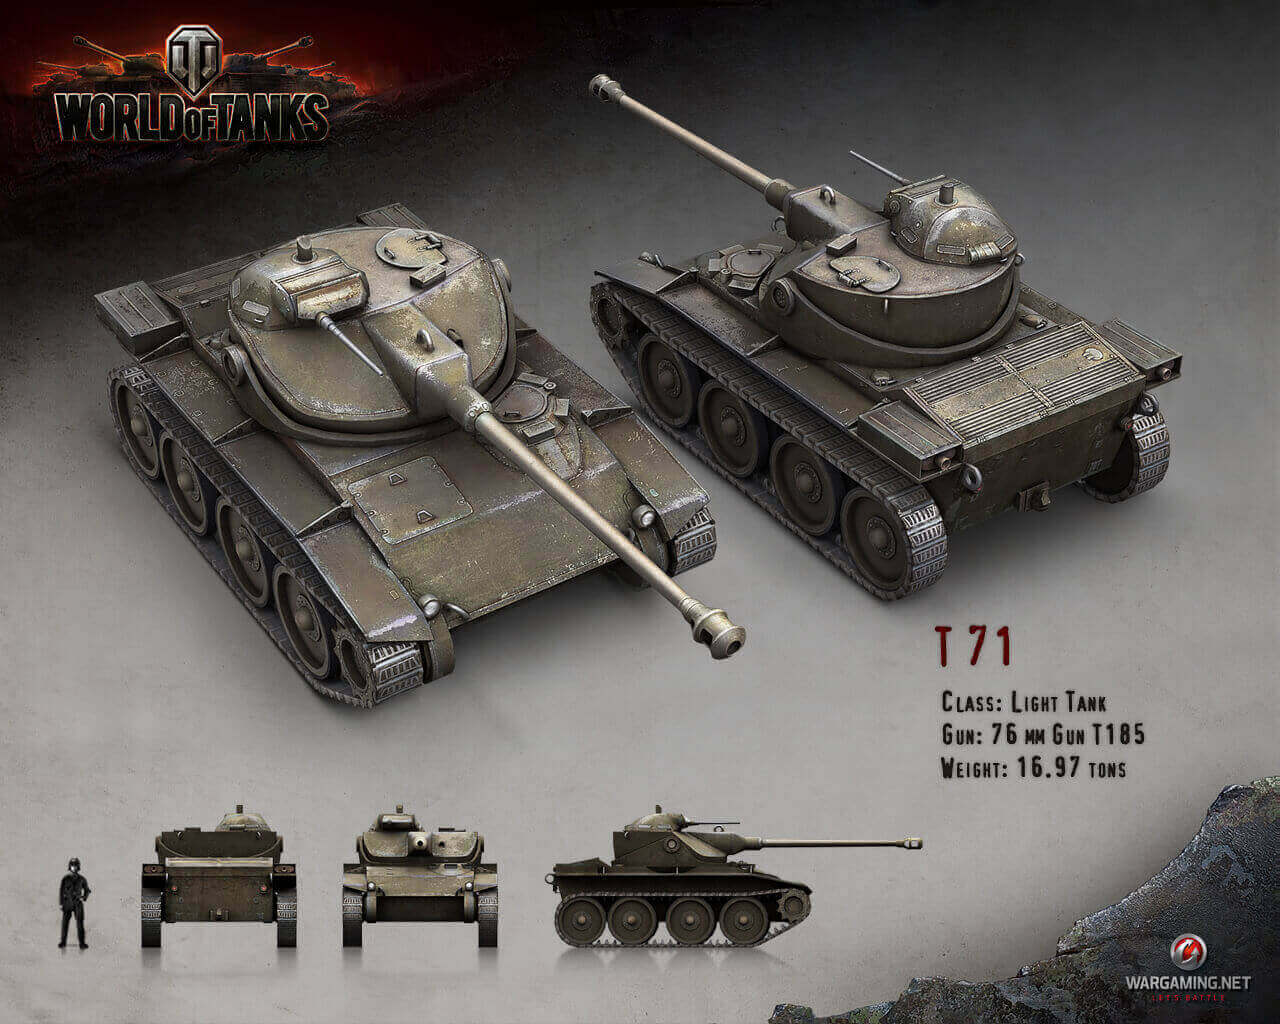 what did you do to the t71 wargaming? - general discussion